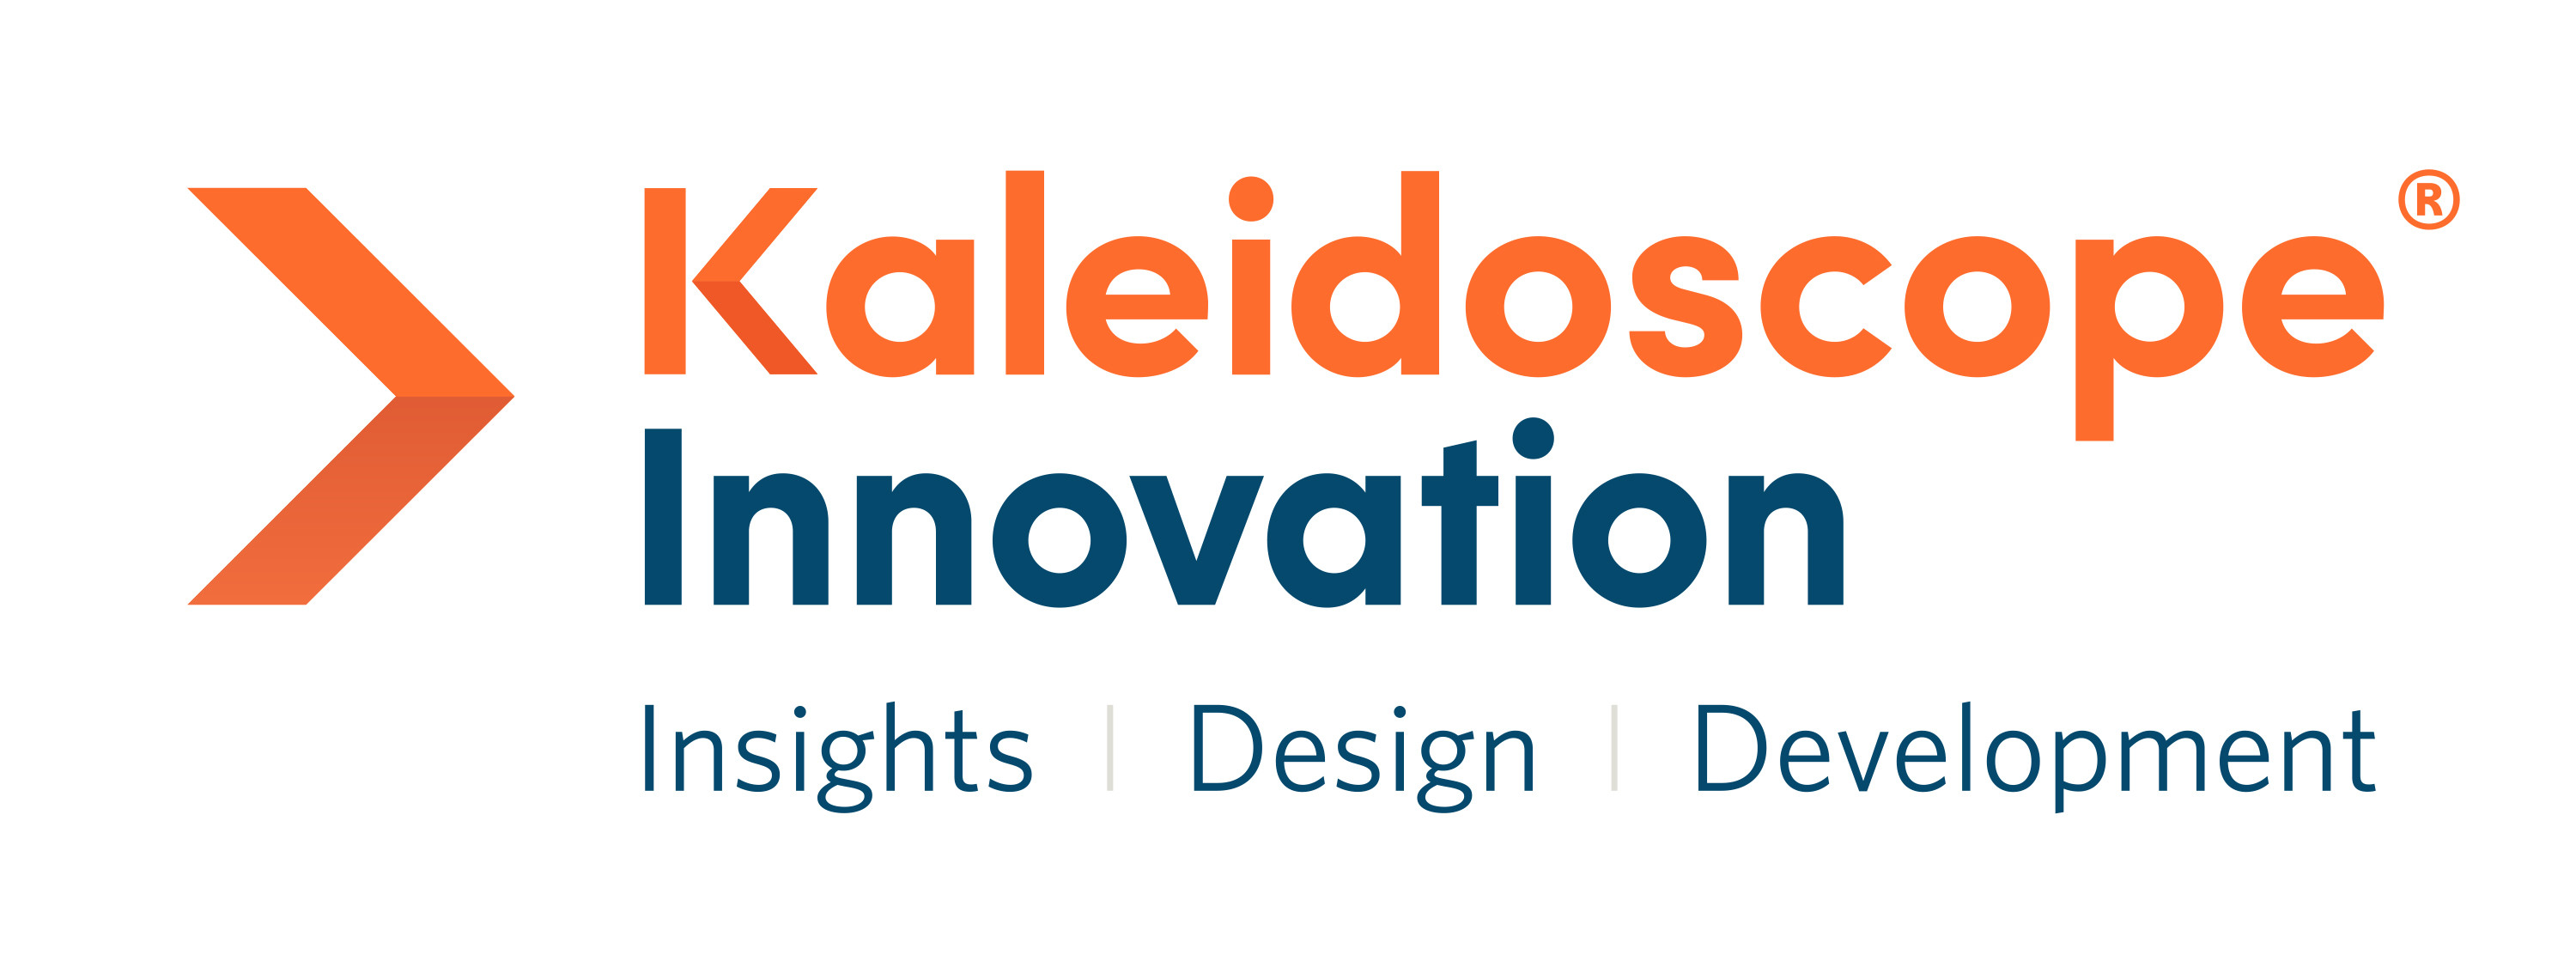 Kaleidoscope Innovation